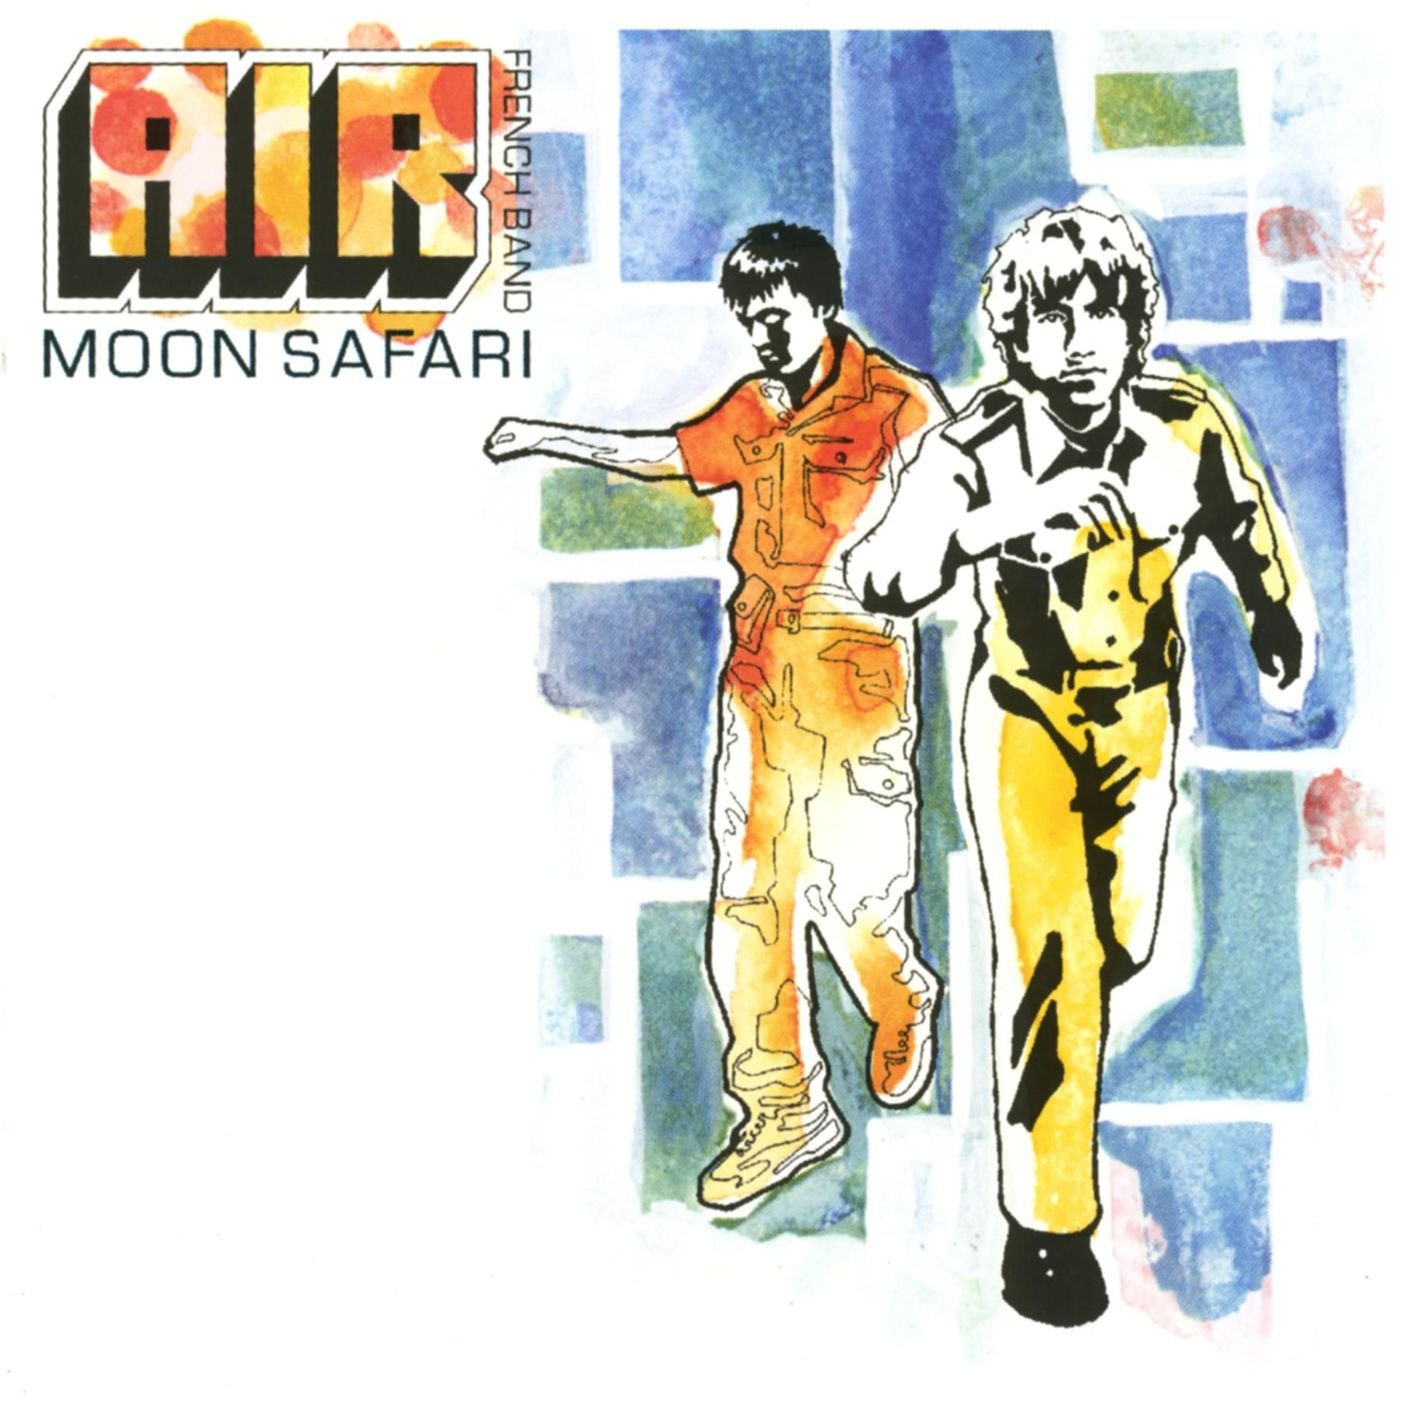 Air, Moon Safari